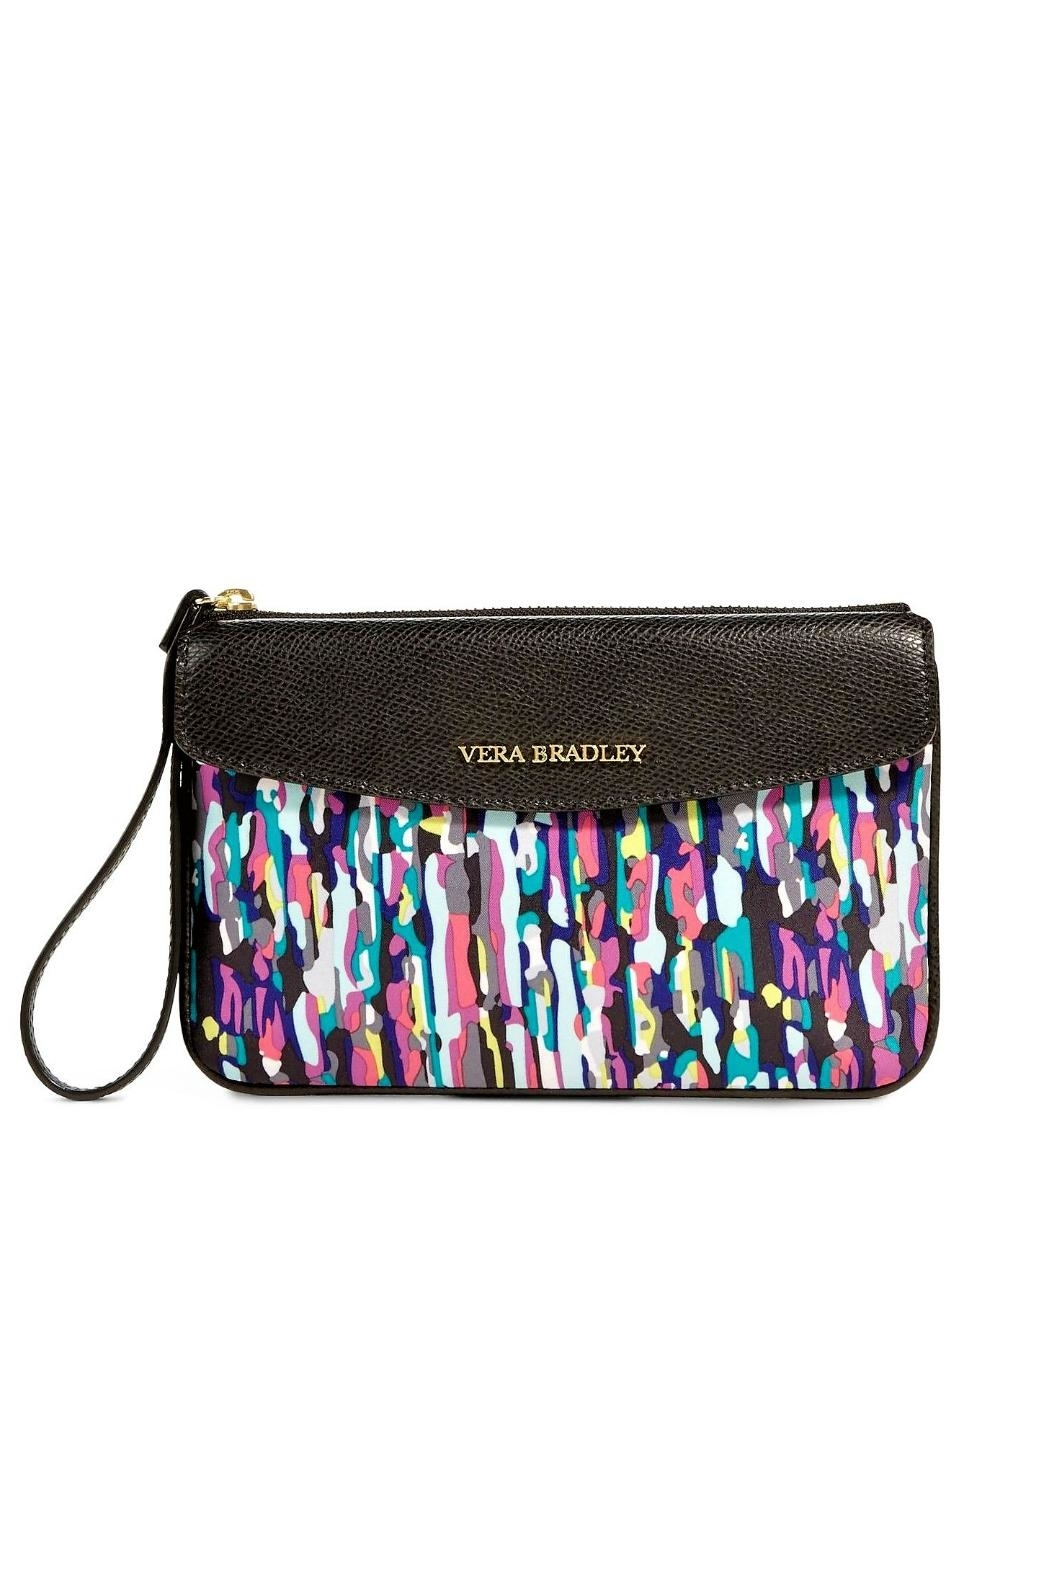 Vera Bradley Leather Trimmed Wristlet - Main Image